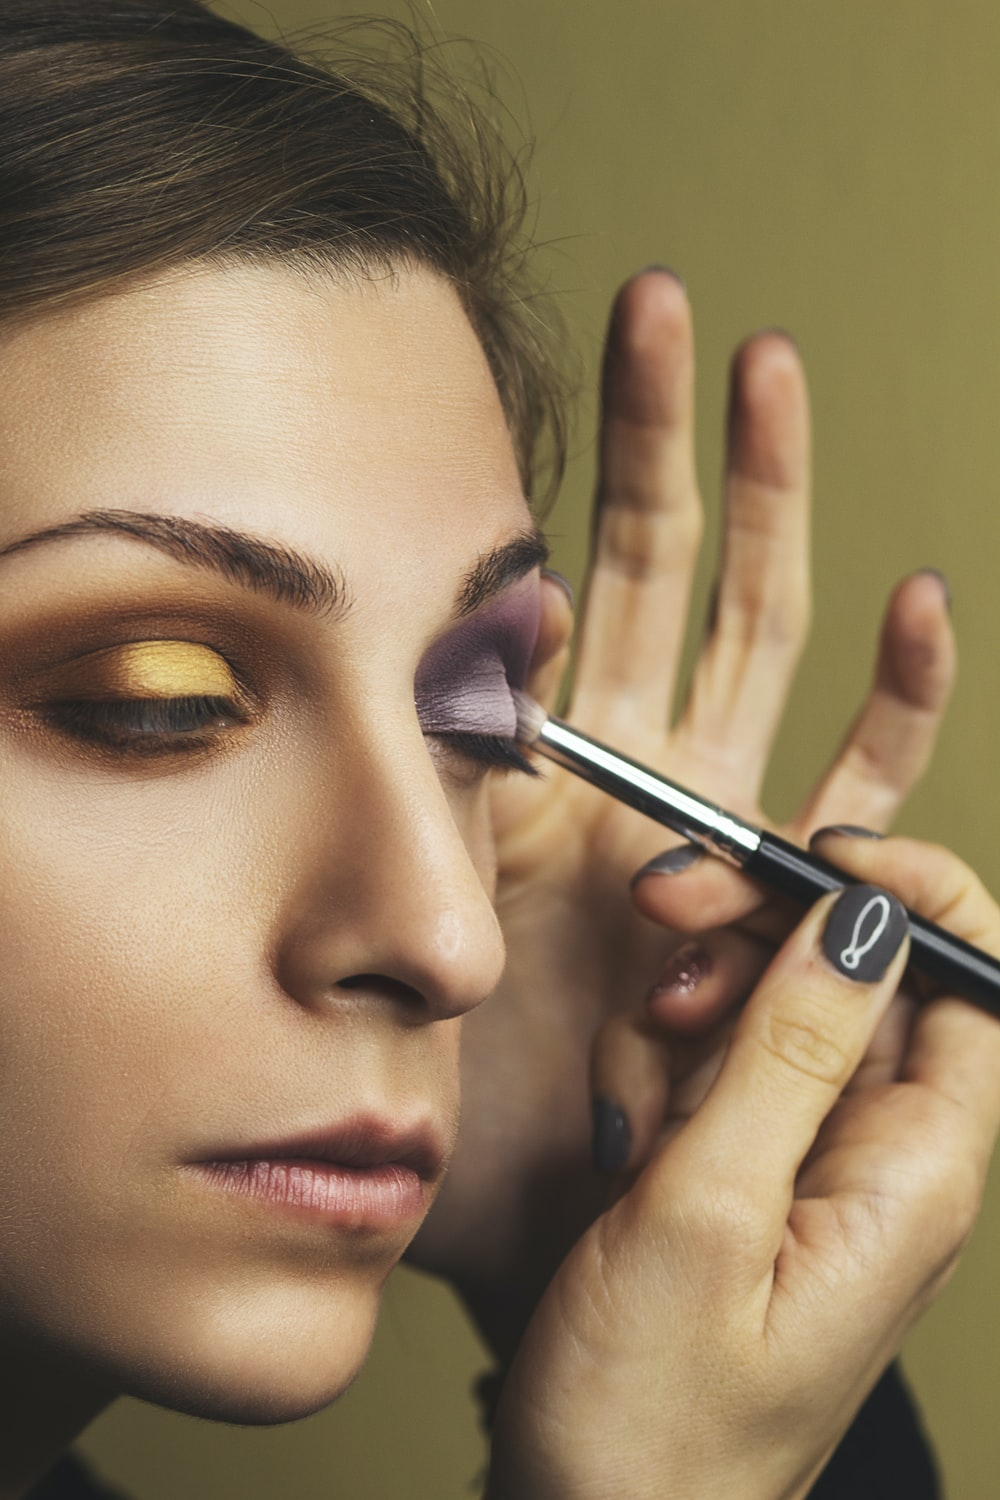 Contrasting-shades-1 Top 10 Outdated Beauty and Makeup Trends to Avoid in 2021